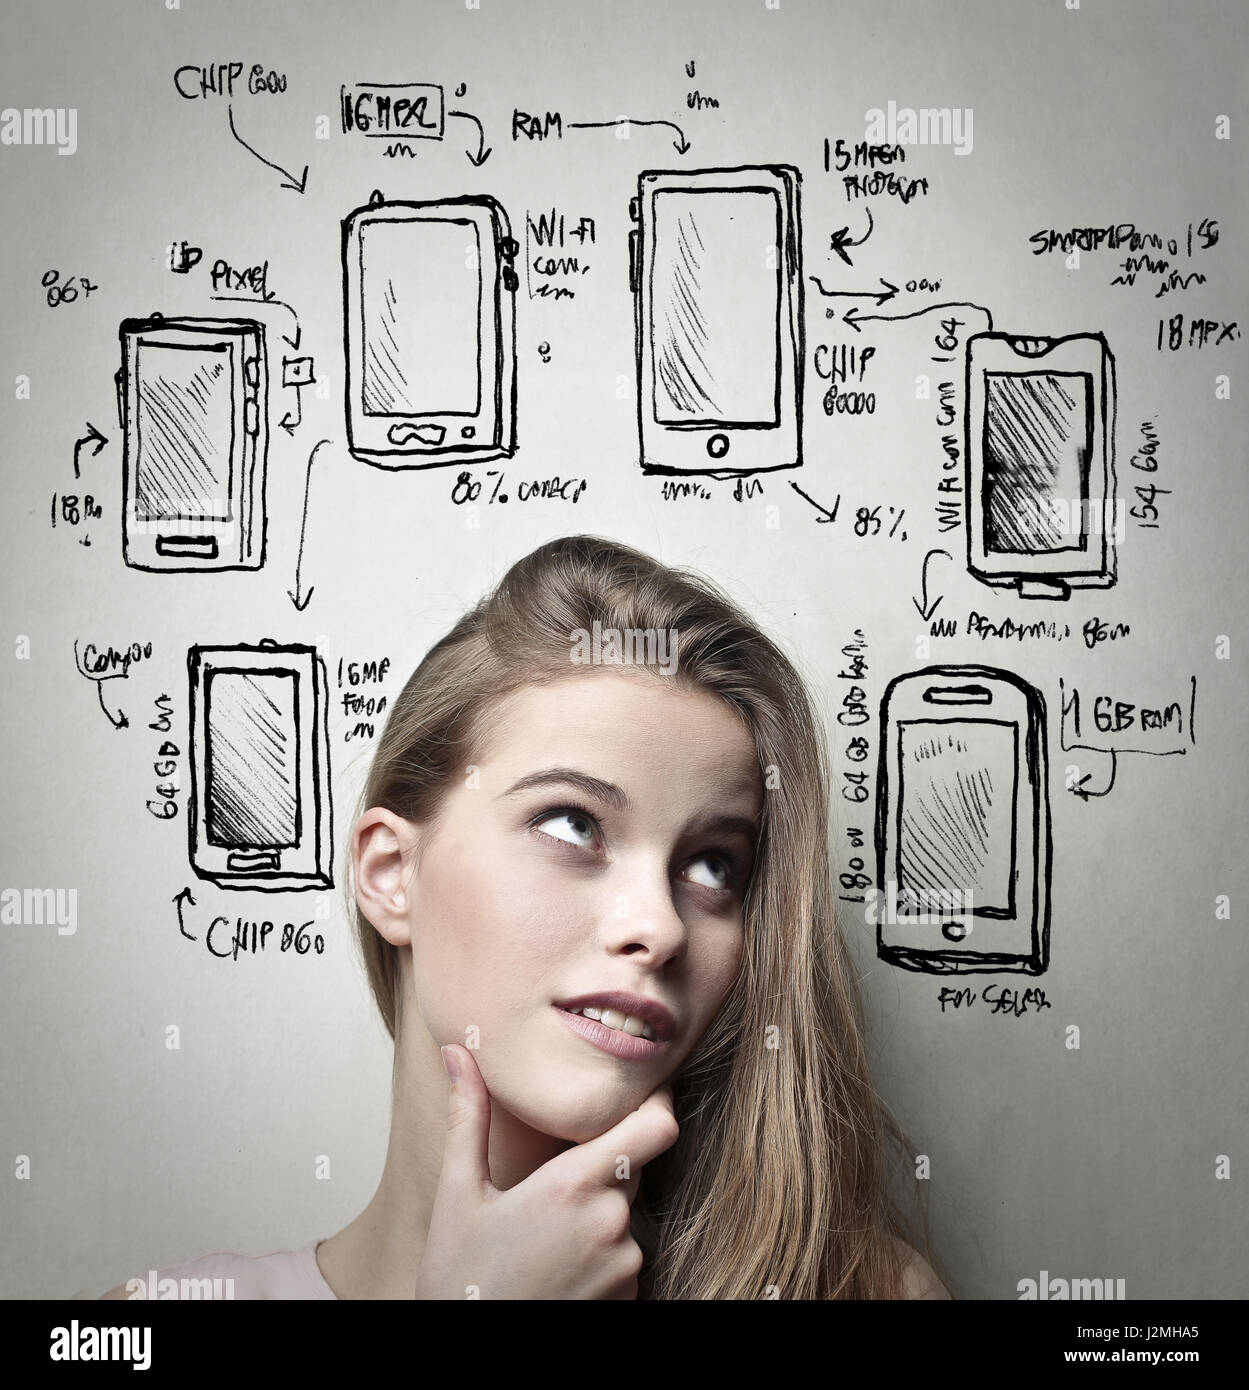 Woman thinking about her new phone - Stock Image